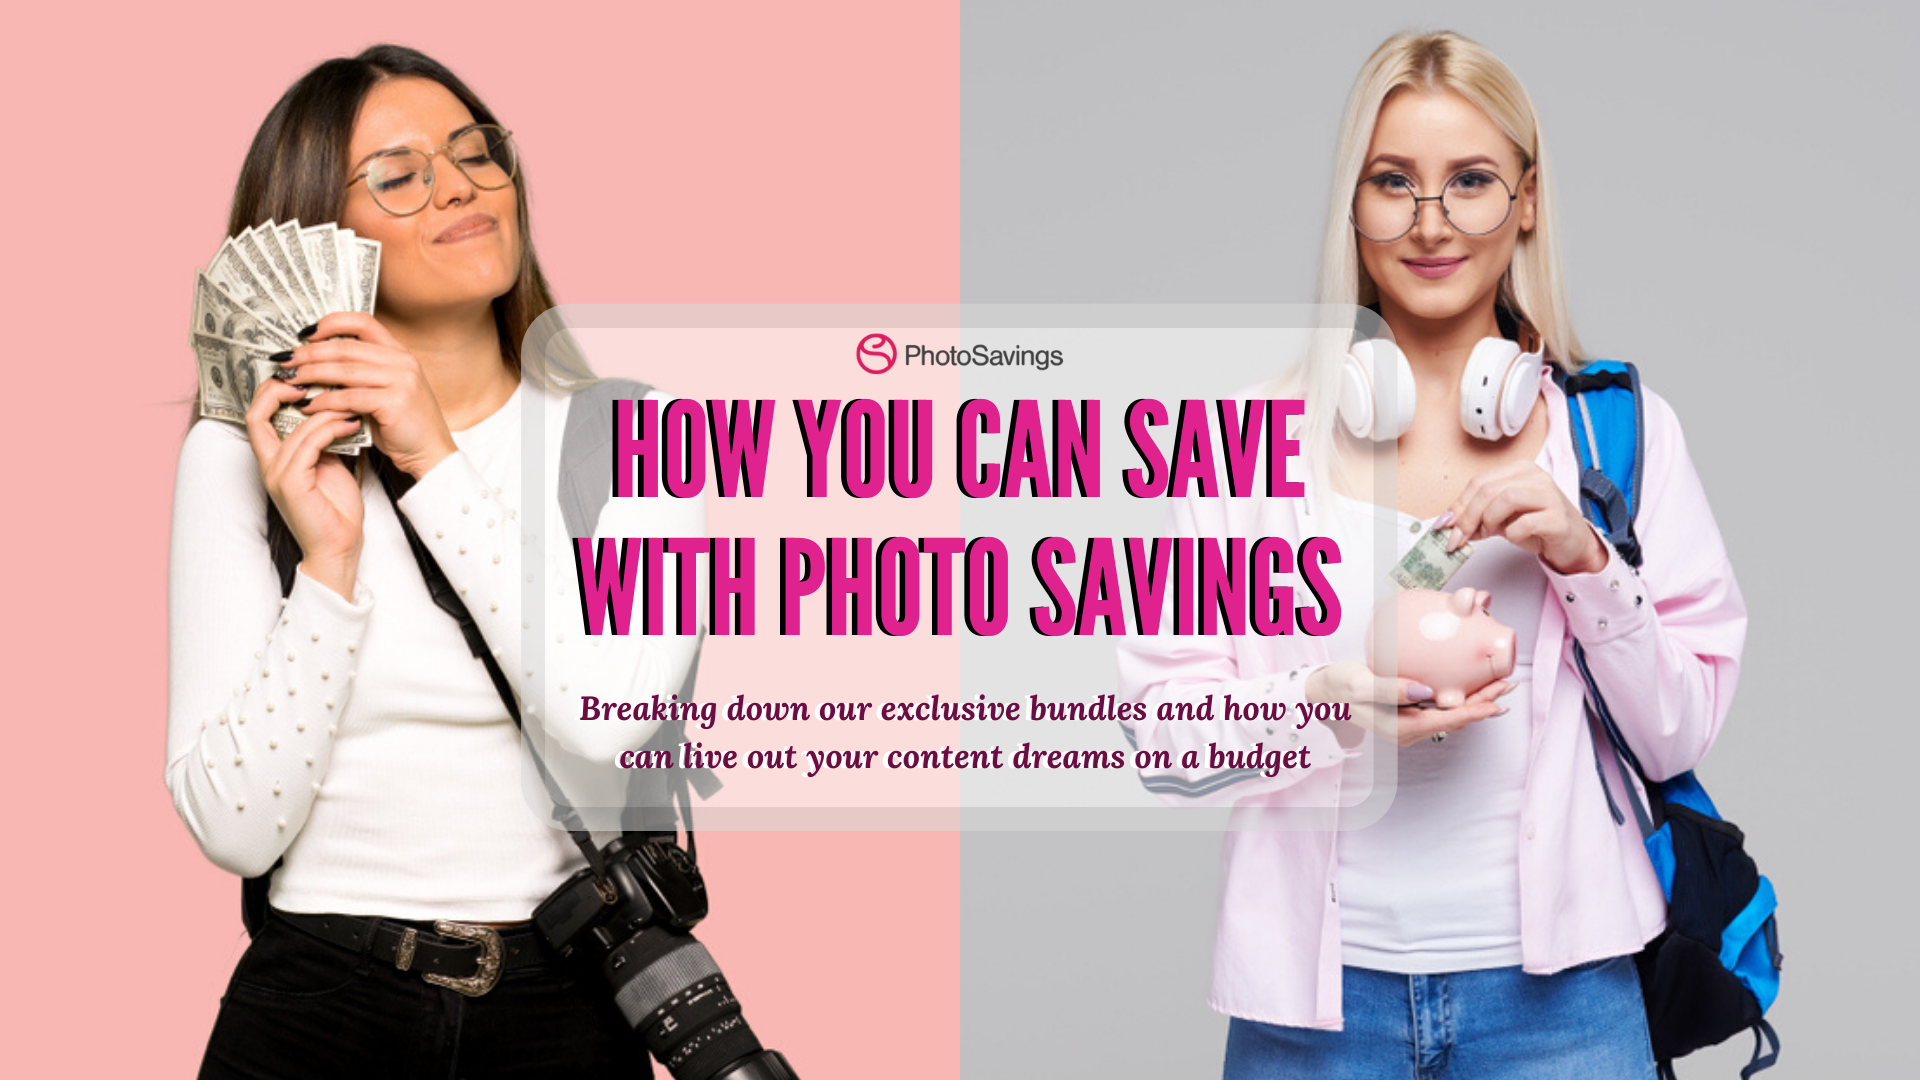 How Photo Savings' Exclusive Bundles Can Help You Save This Holiday Season